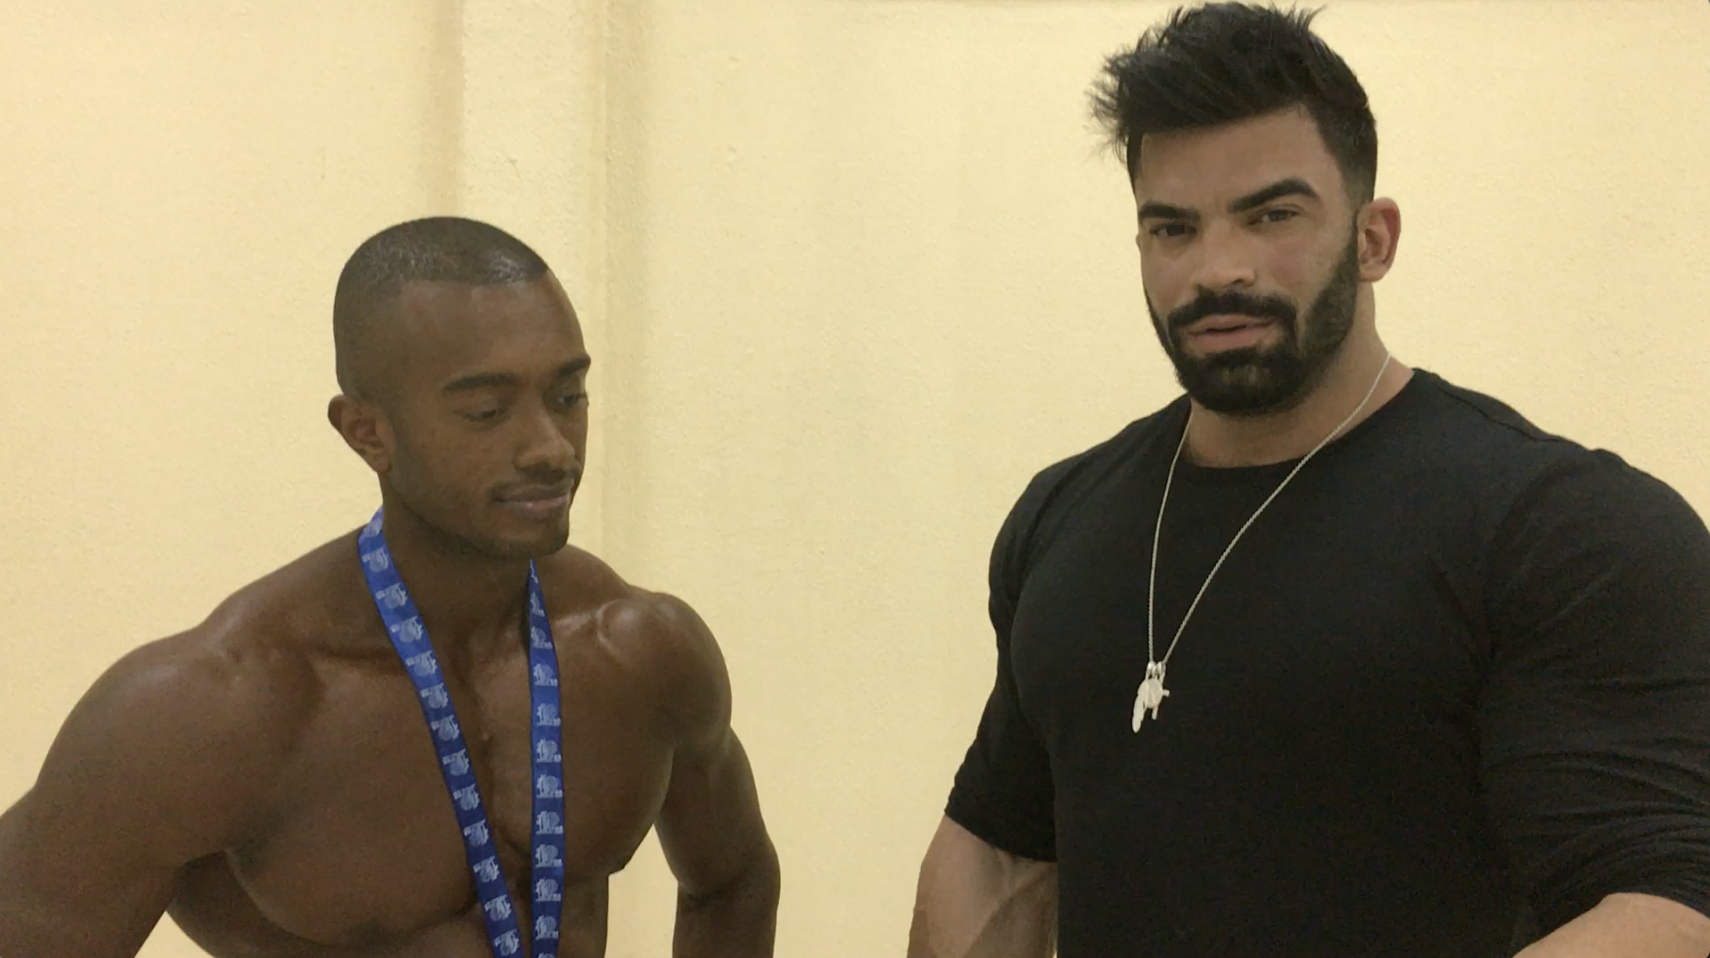 2017 IFBB Kuwait Pro Men's Physique Winner Abdullah Alsaeed interviewed by Sergi Constance & Rico Barakat